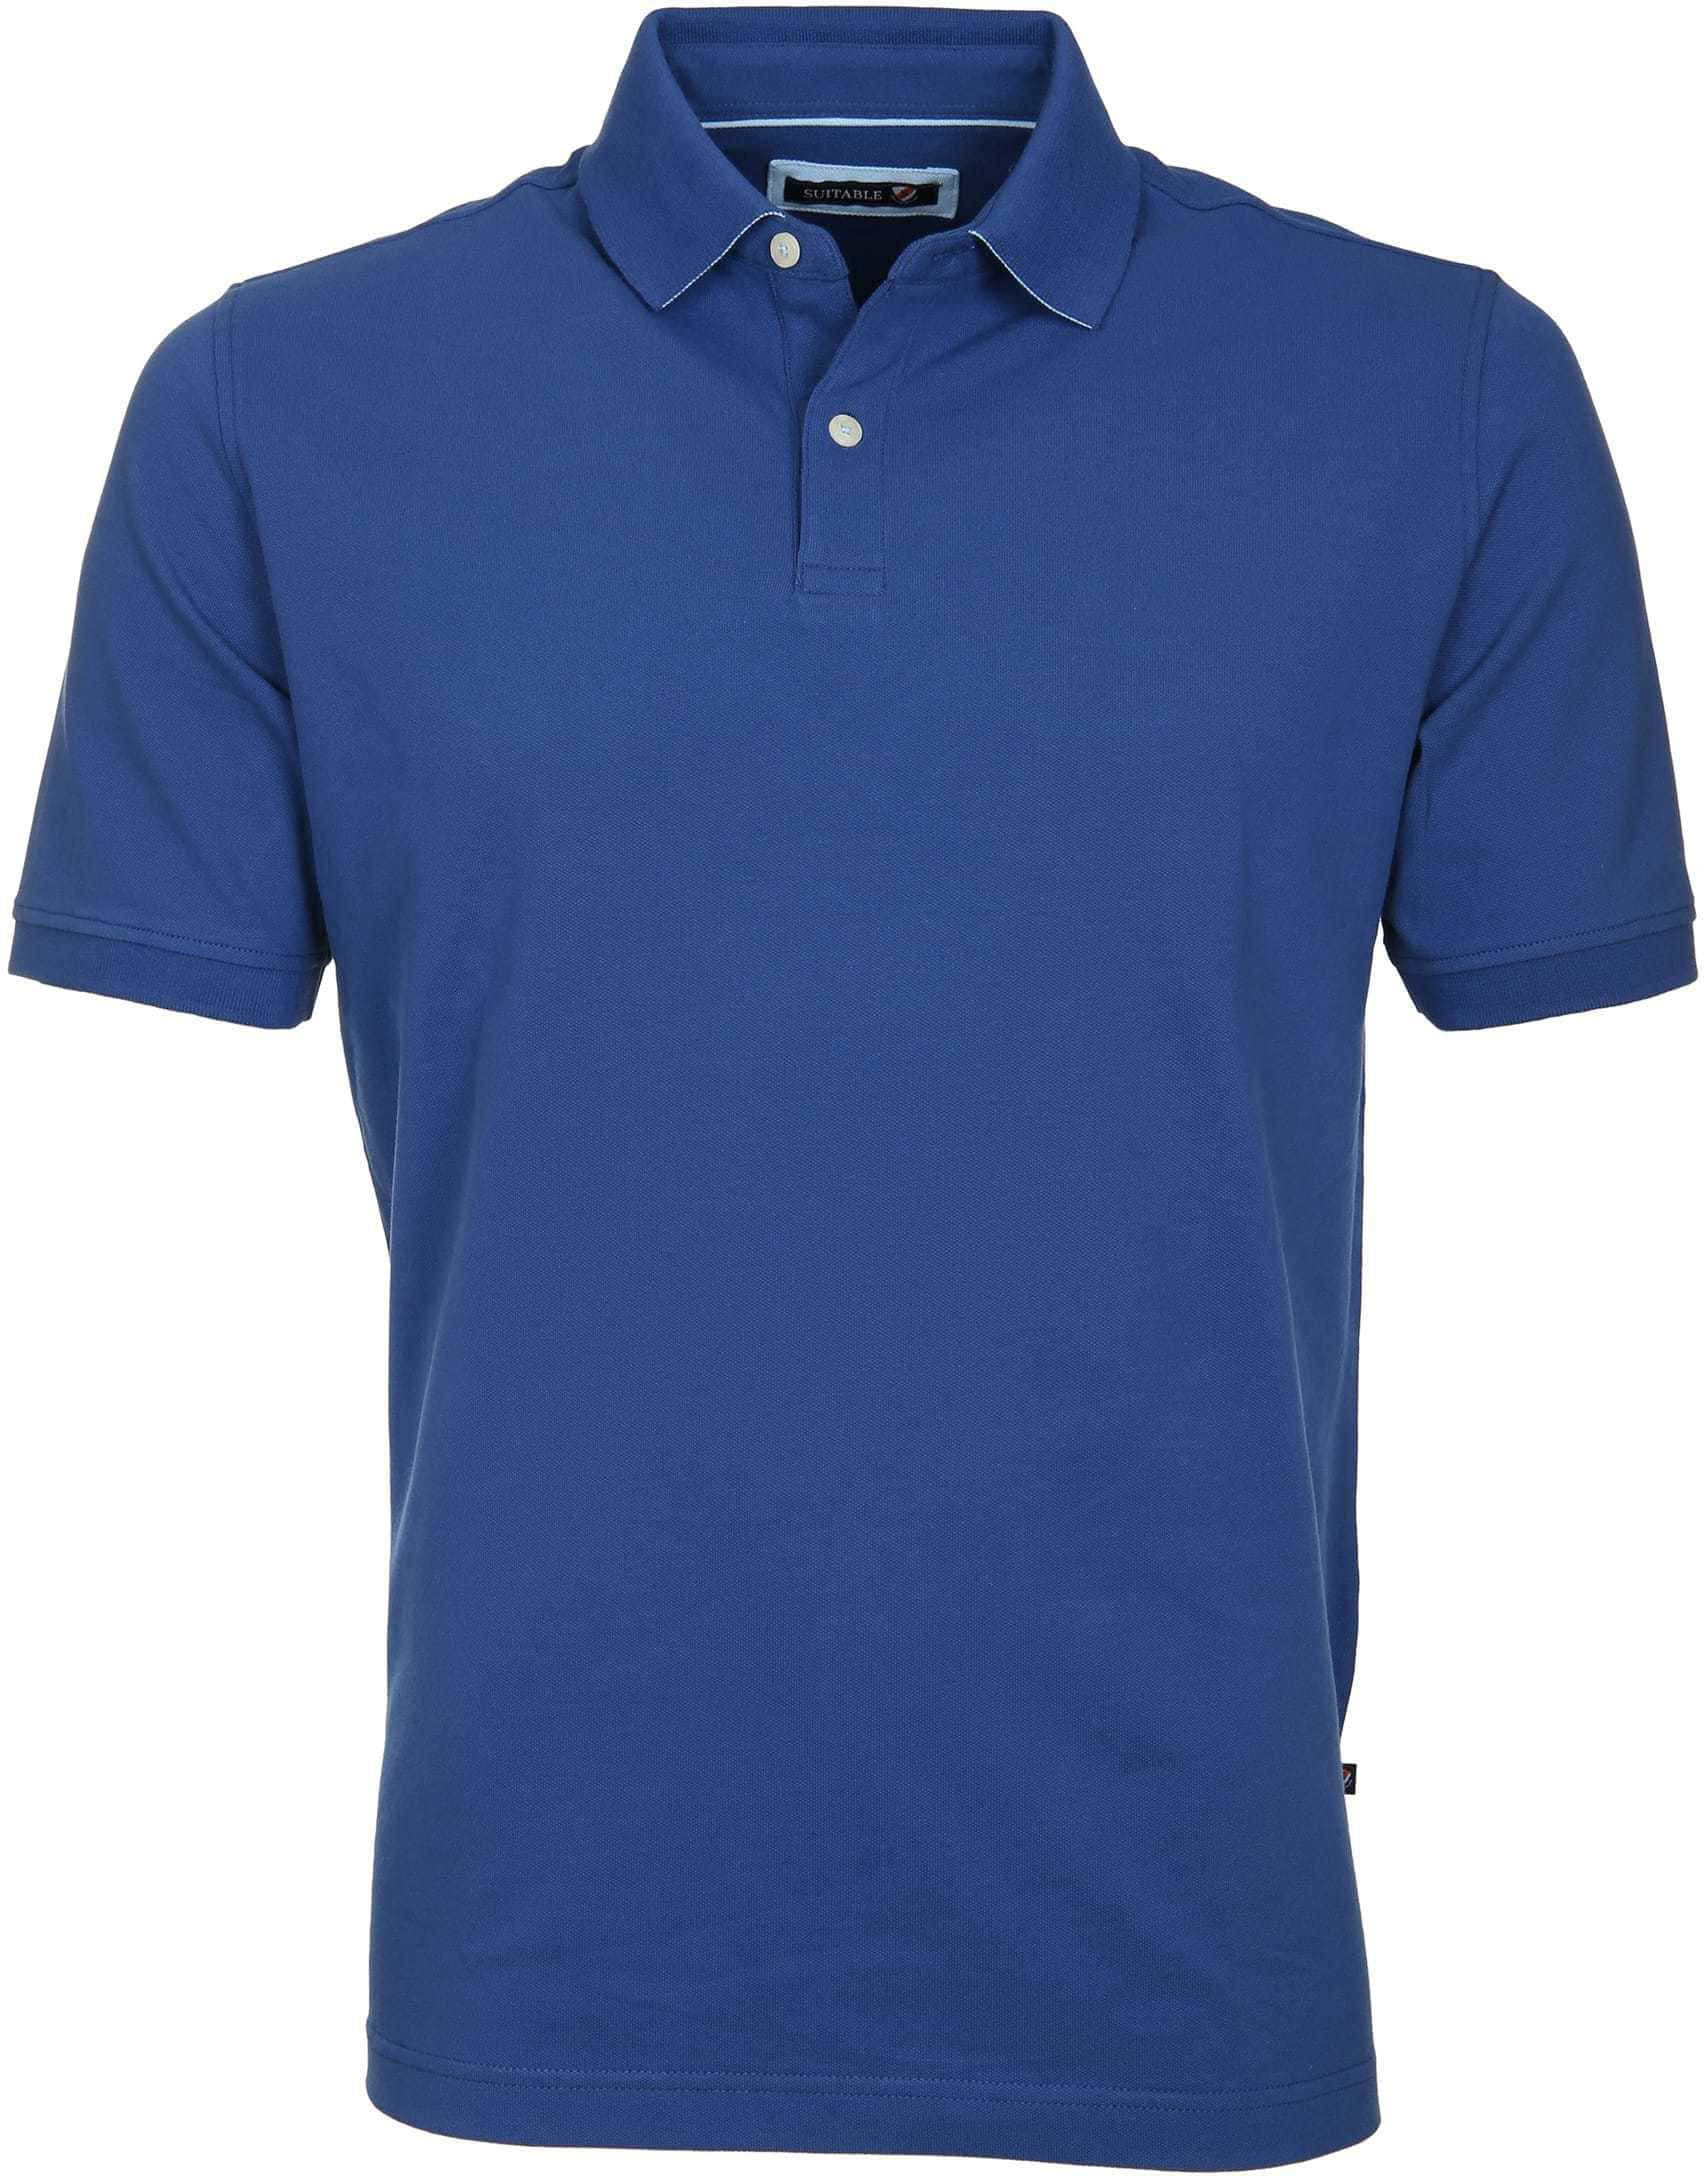 Suitable Poloshirt Basic Royal Blau foto 0